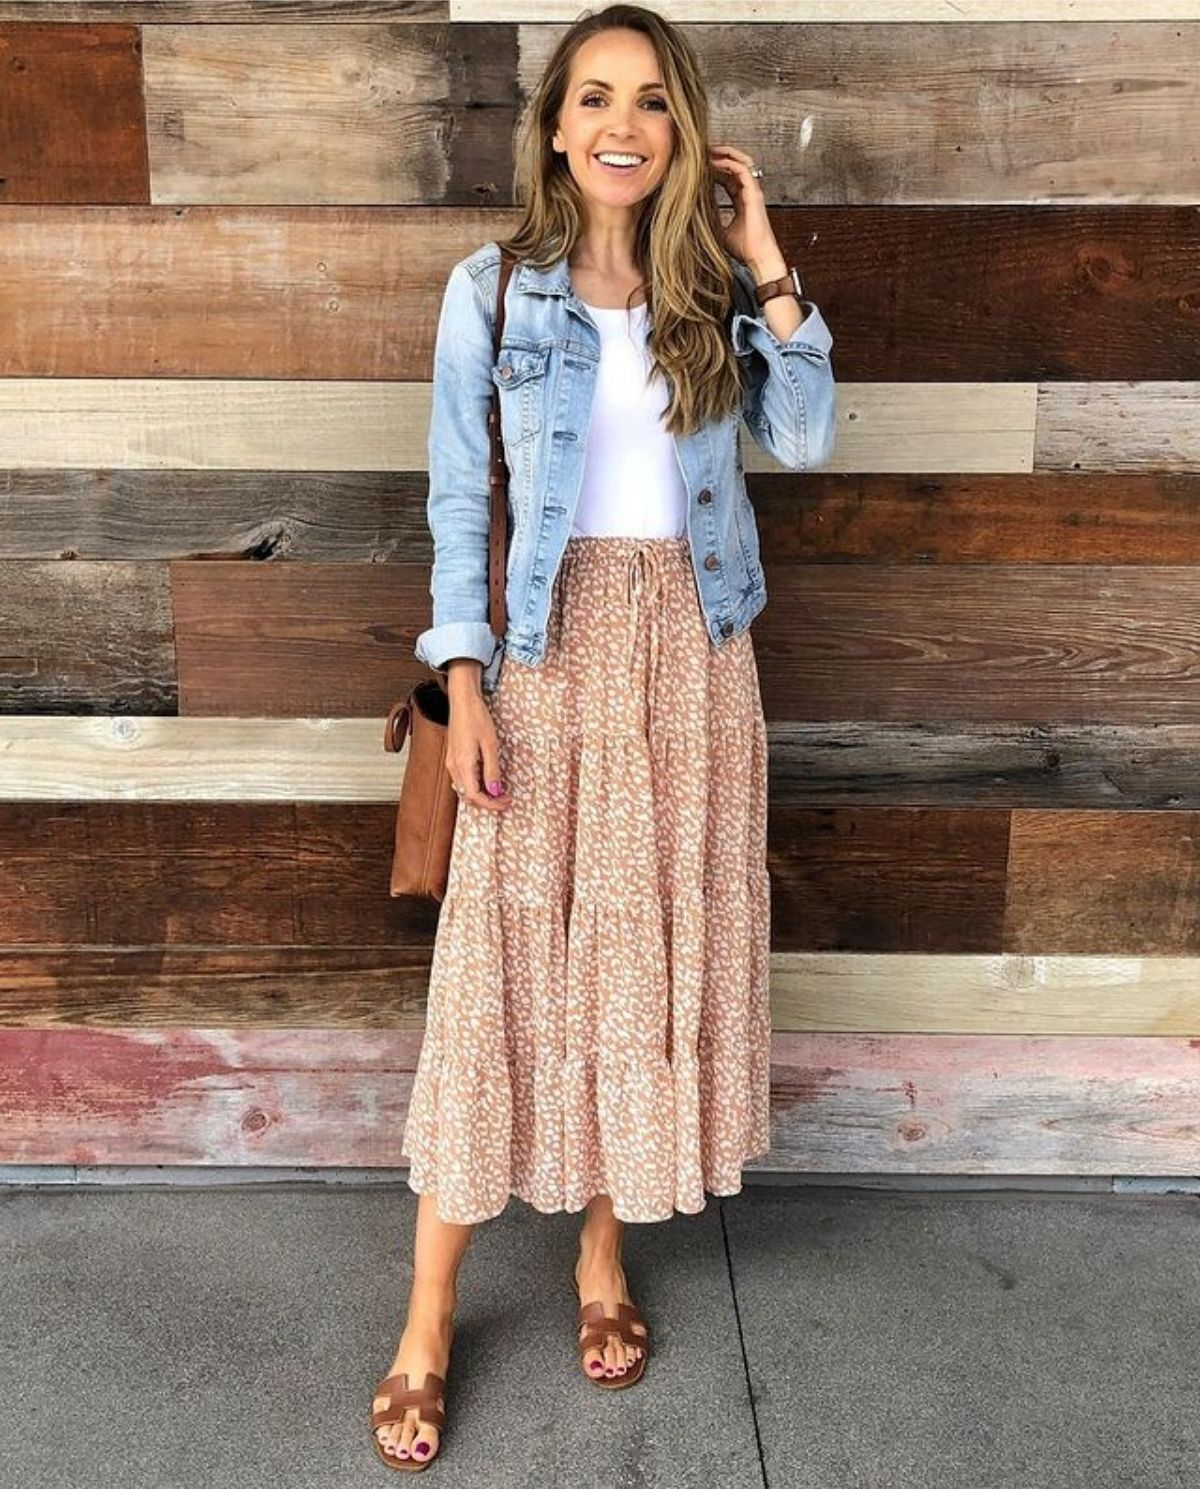 outfit with peach colored spring skirt, sandals, white top, and light denim jacket